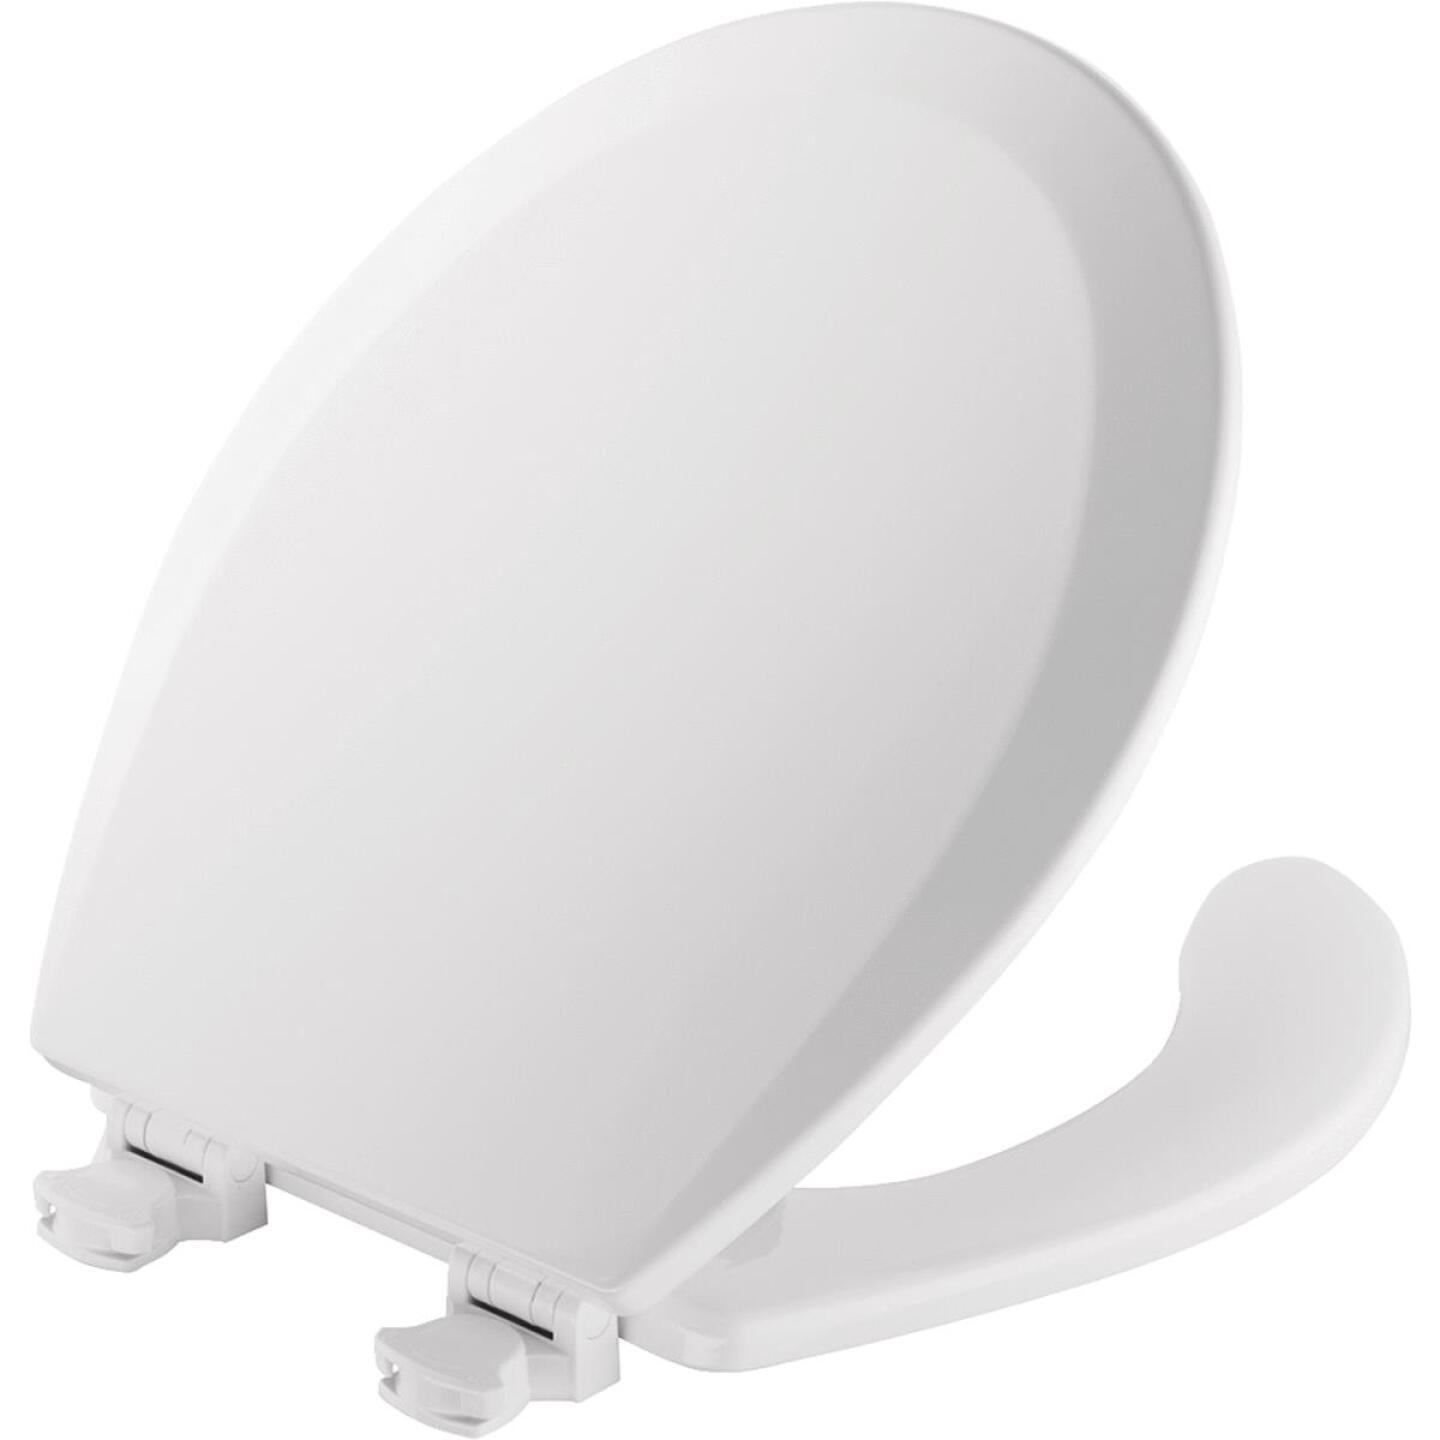 Mayfair Round Open Front White Toilet Seat with Cover Image 1